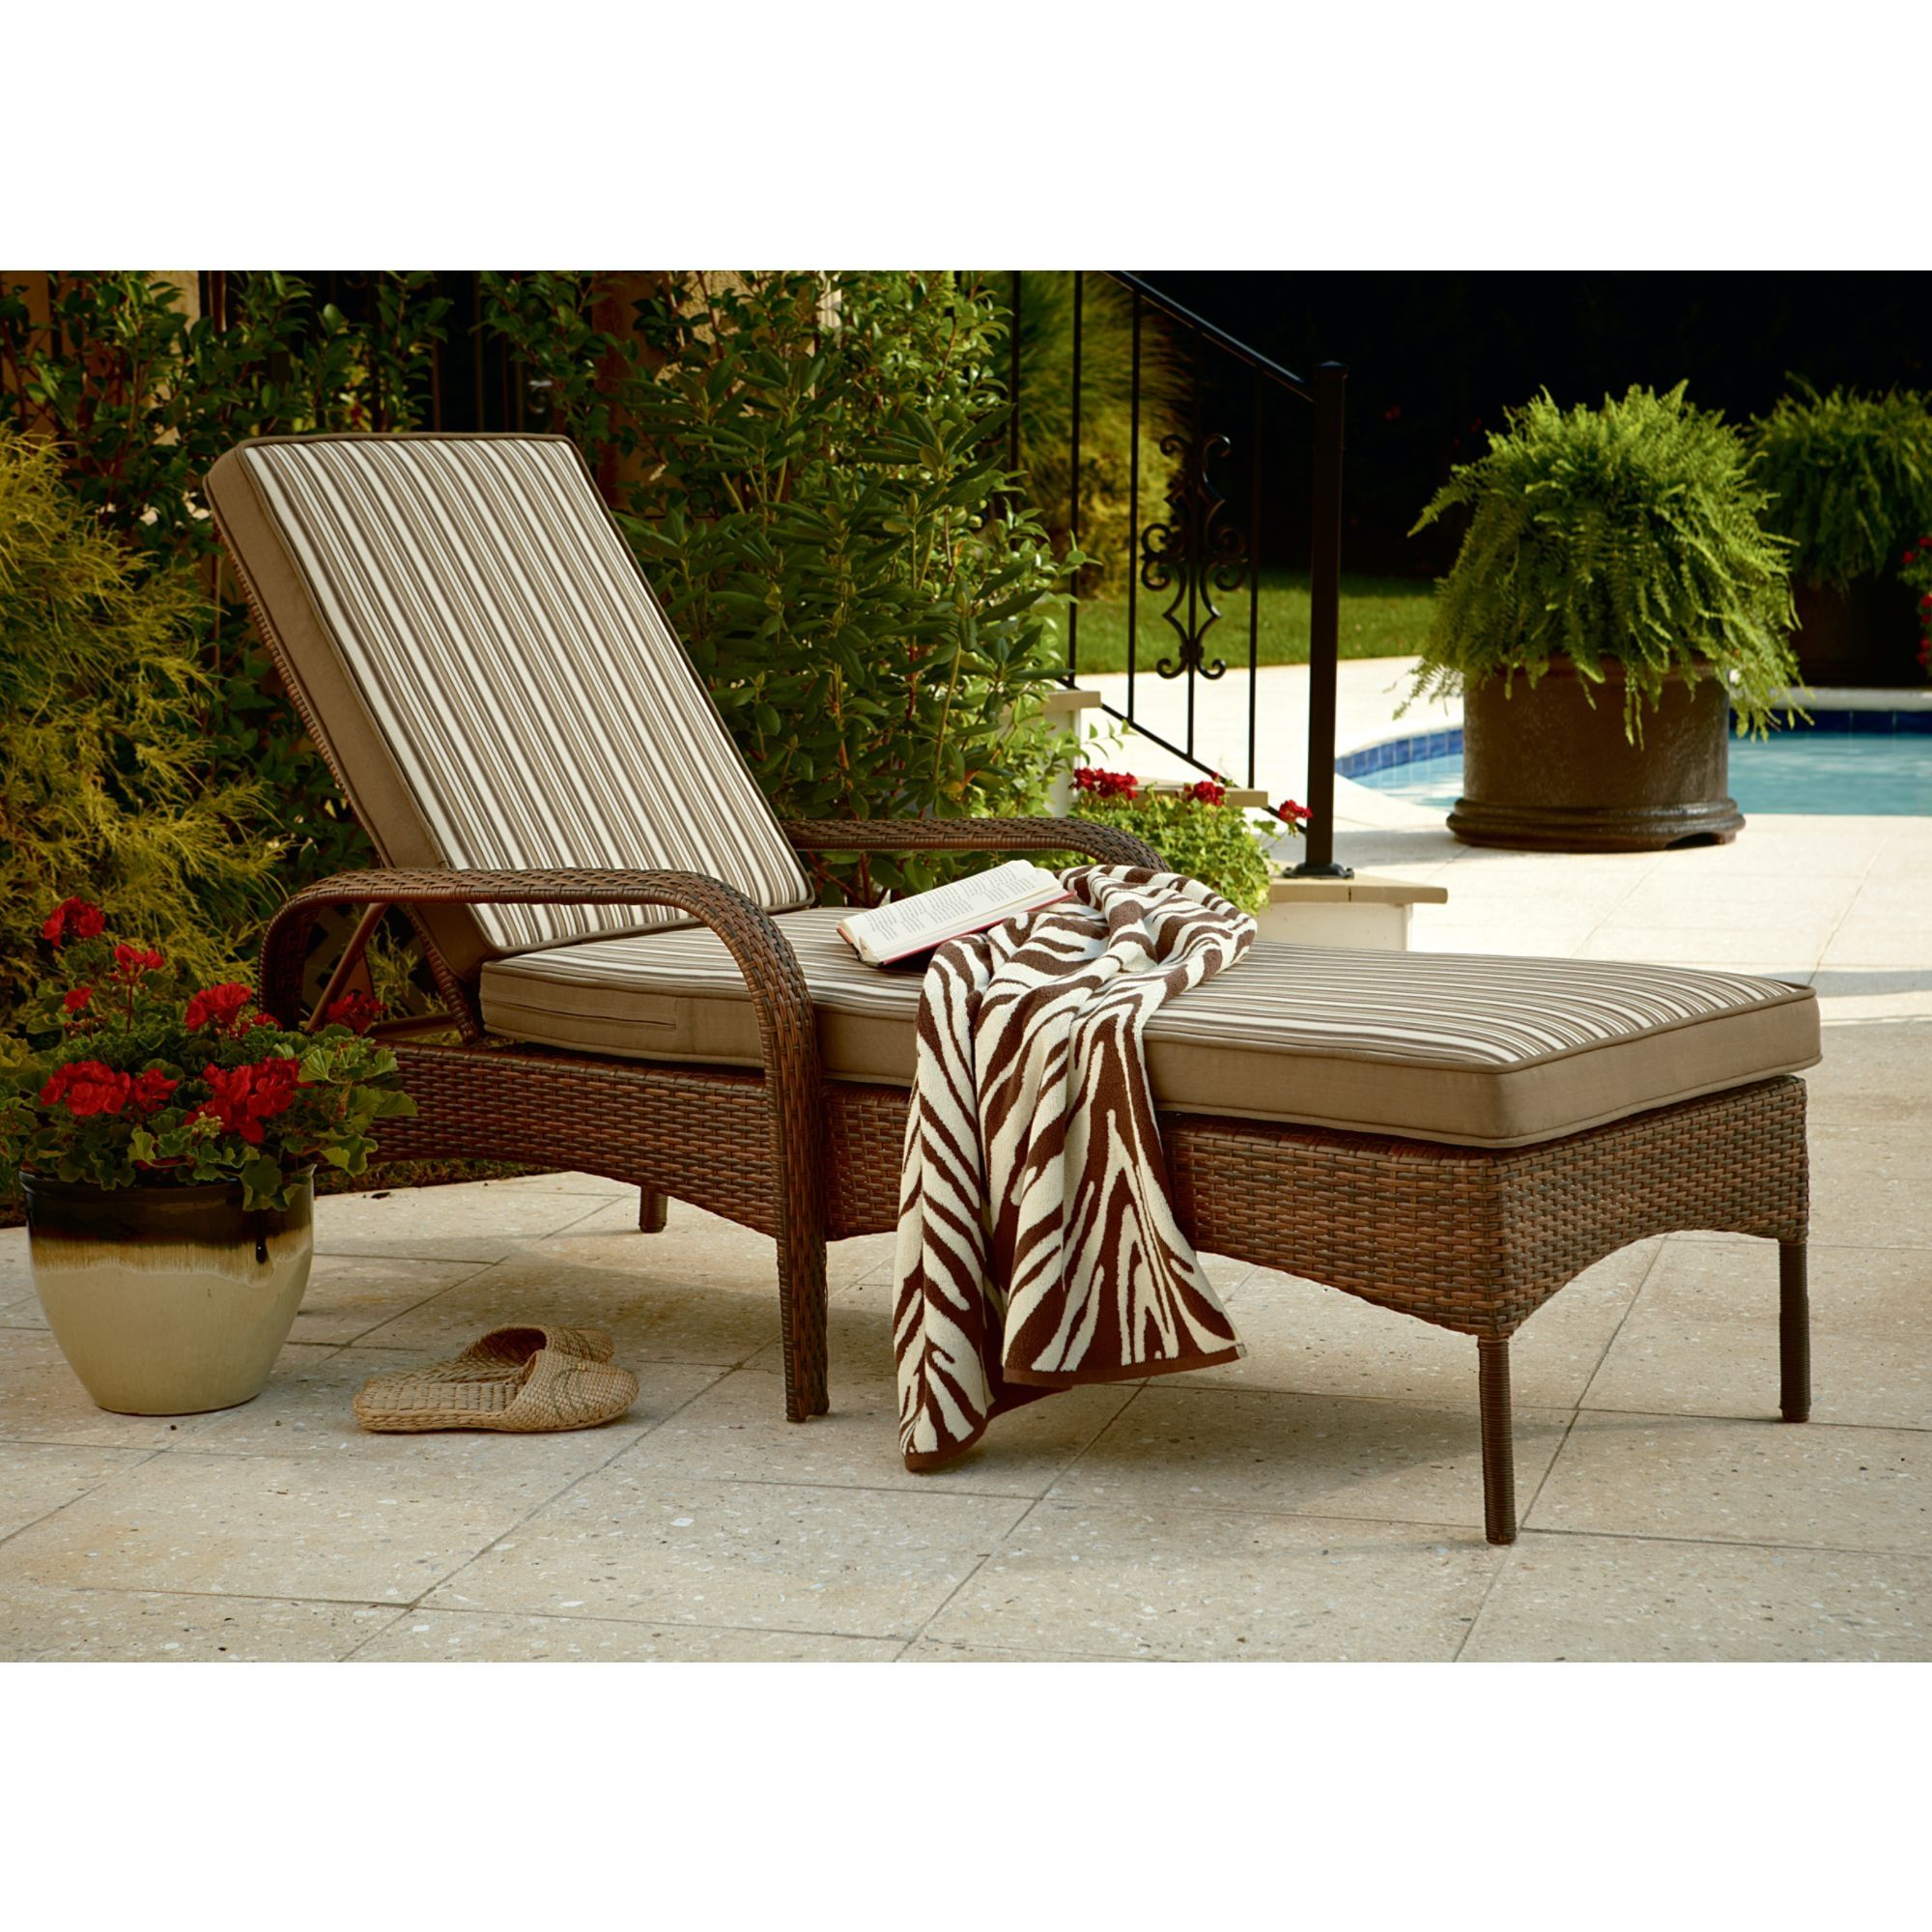 Sears Chaise Lounge Chairs Patio Furniture